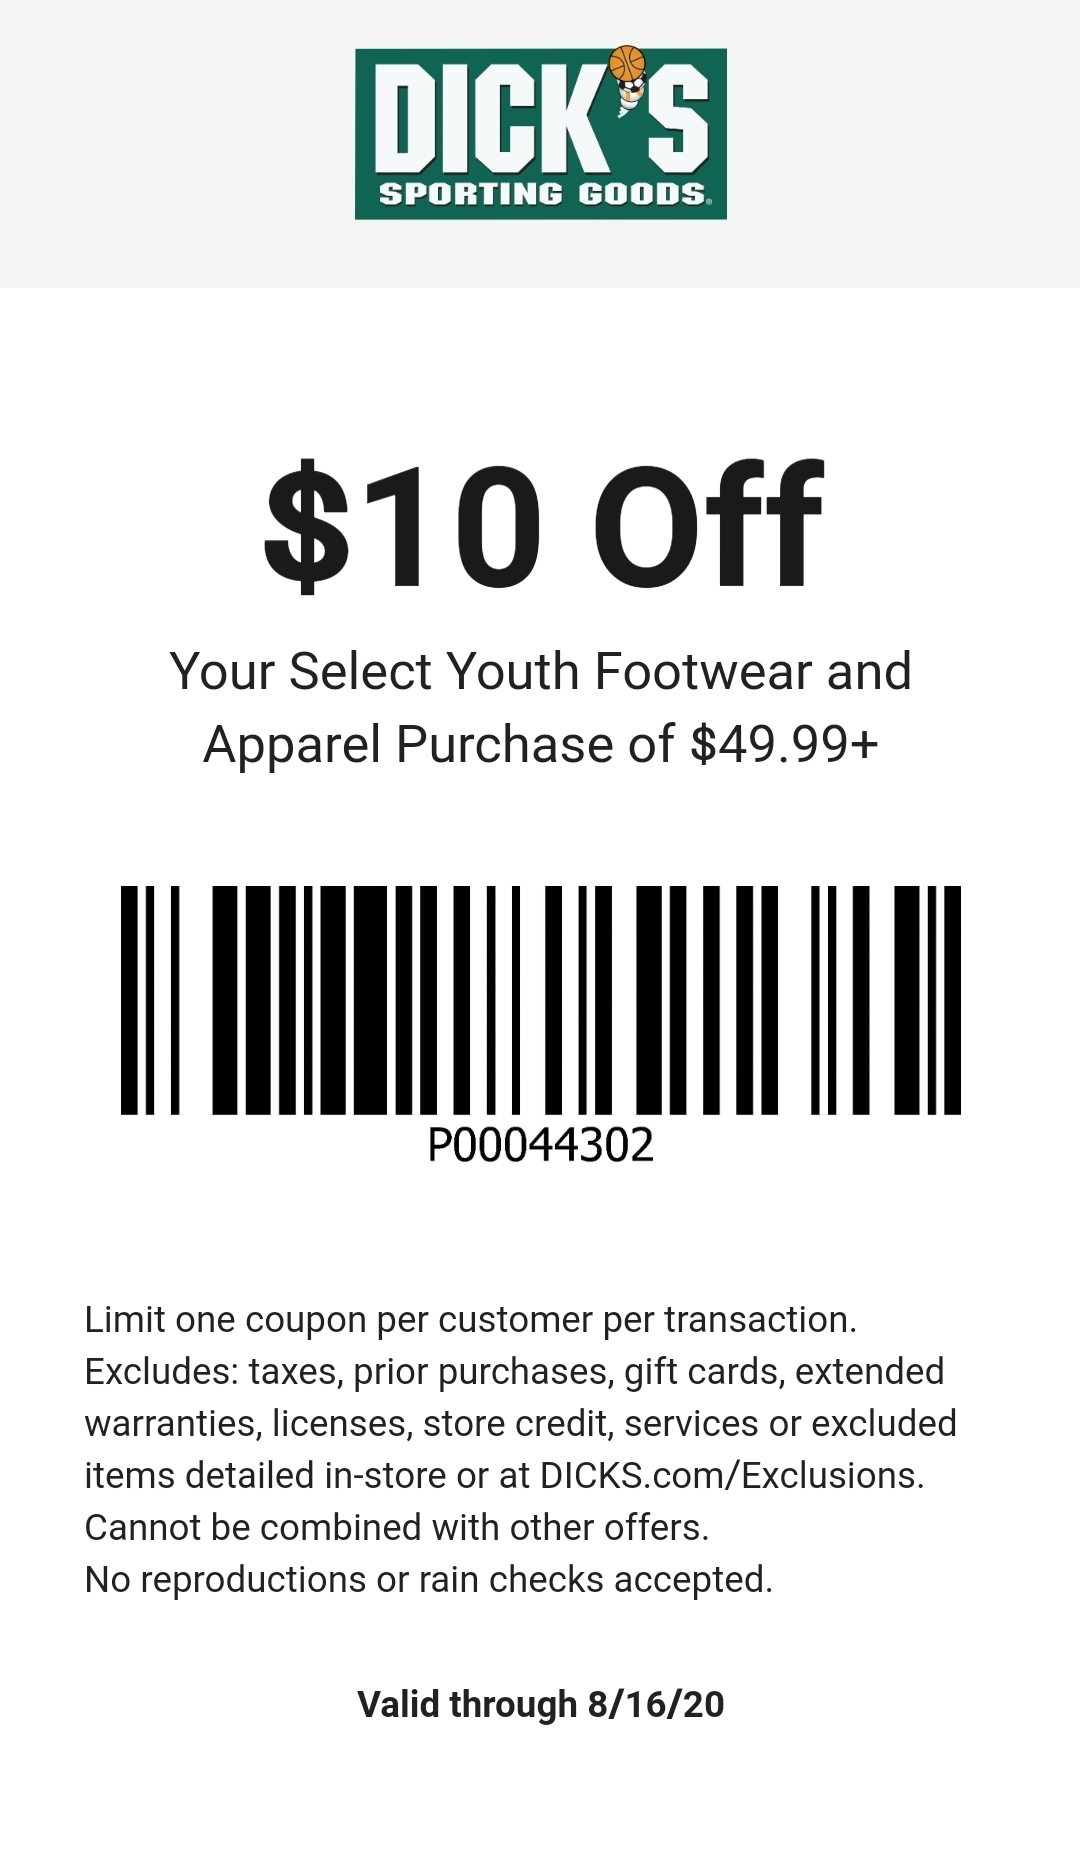 Dicks Sporting Goods Coupon: $10 Off $49.99 Select Youth Footwear & Apparel